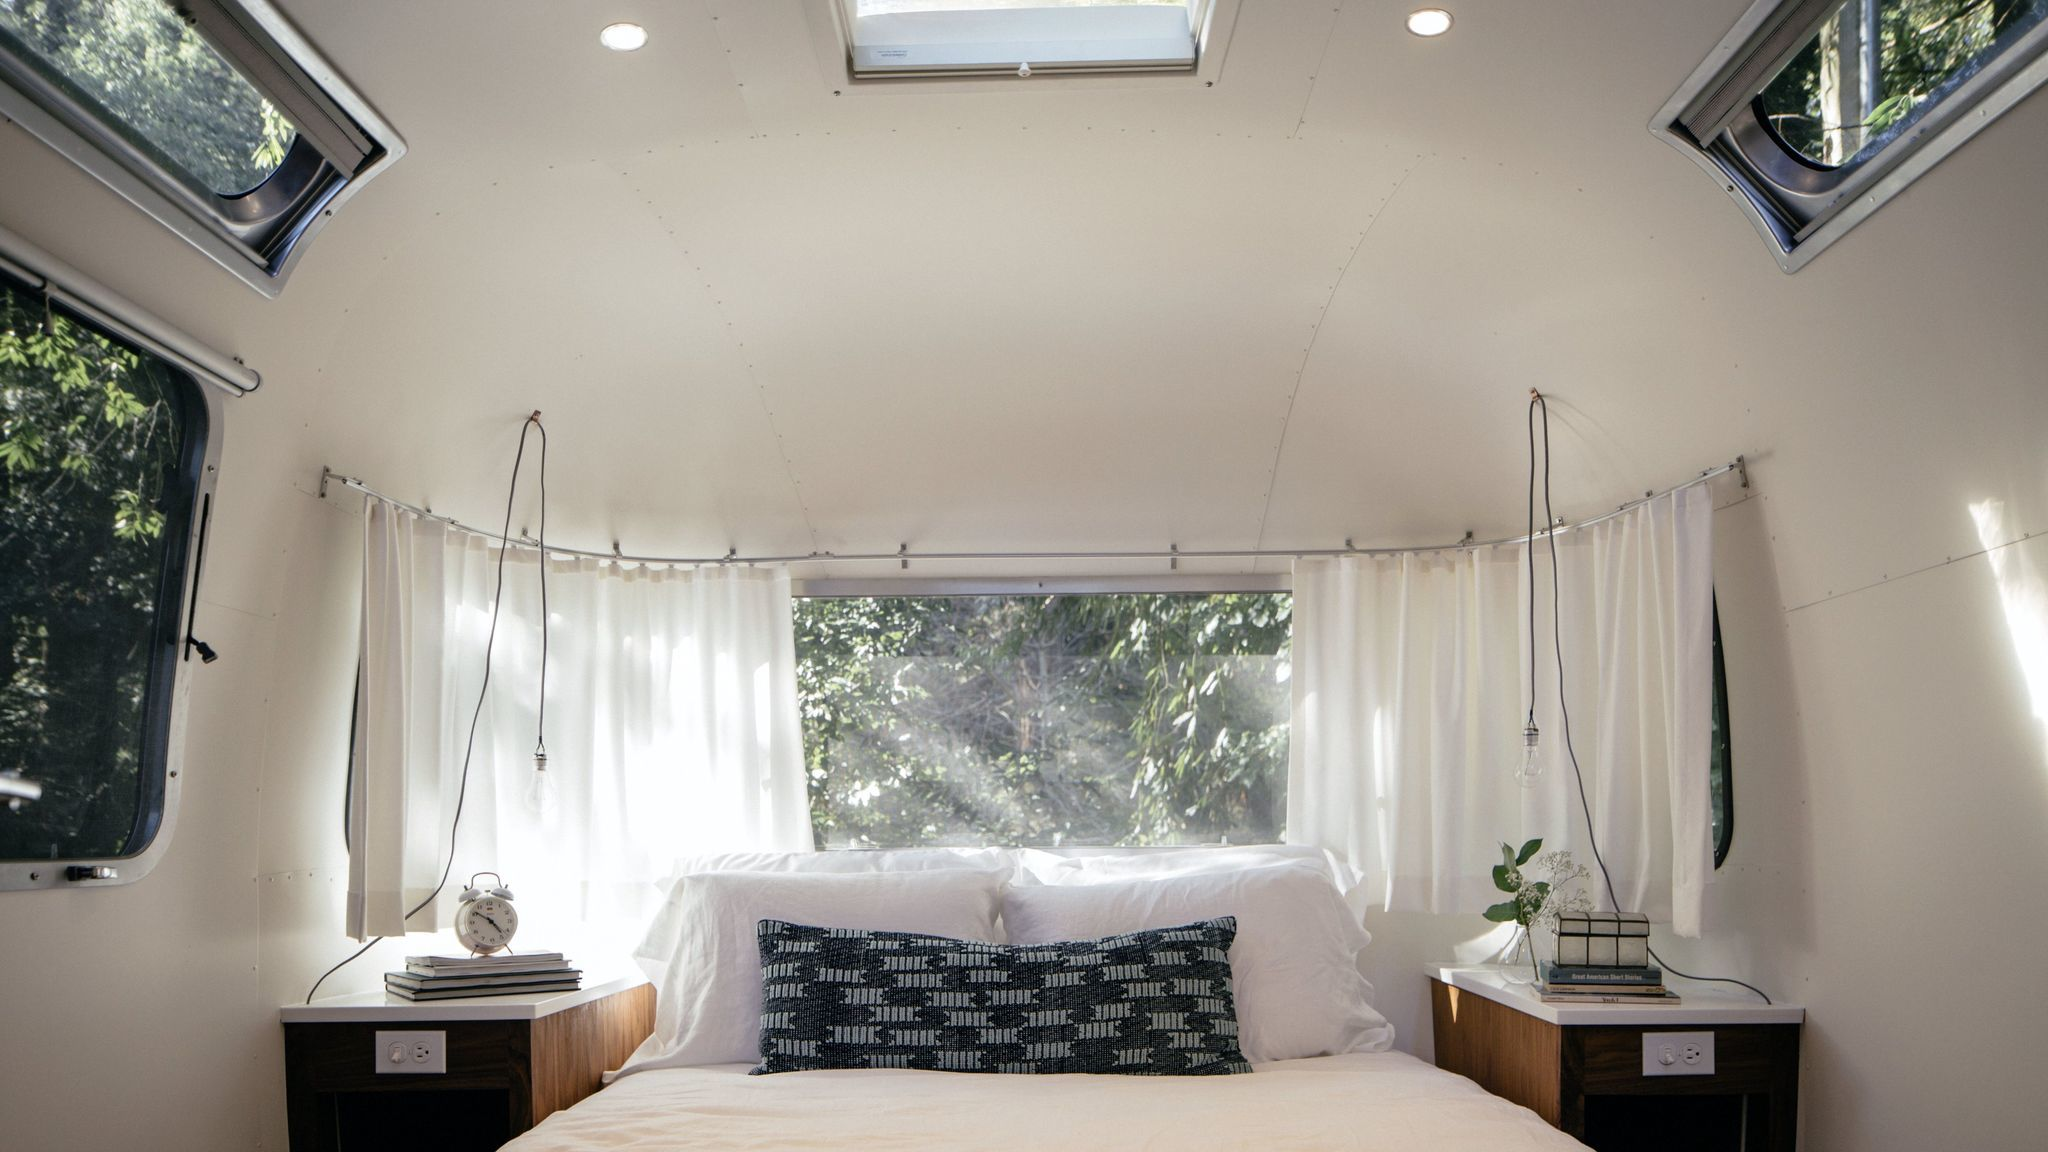 Van Life: Cozy interior at AutoCamp on the Russian River. Credit: Erin Feinblatt / AutoCamp